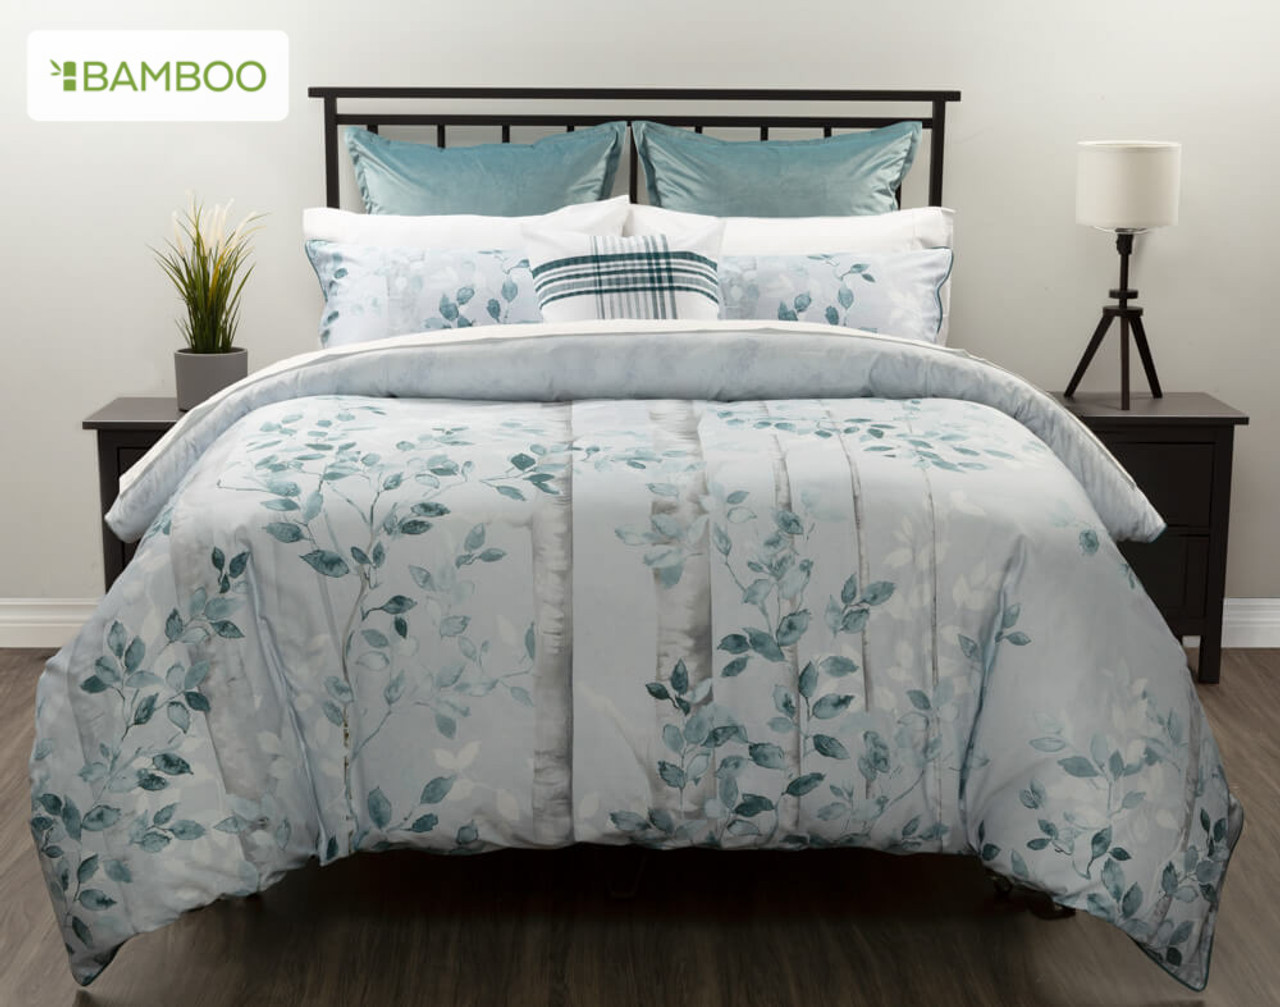 Aspen Bedding Collection, featuring a dreamy palette of soft greys with deep teal accents